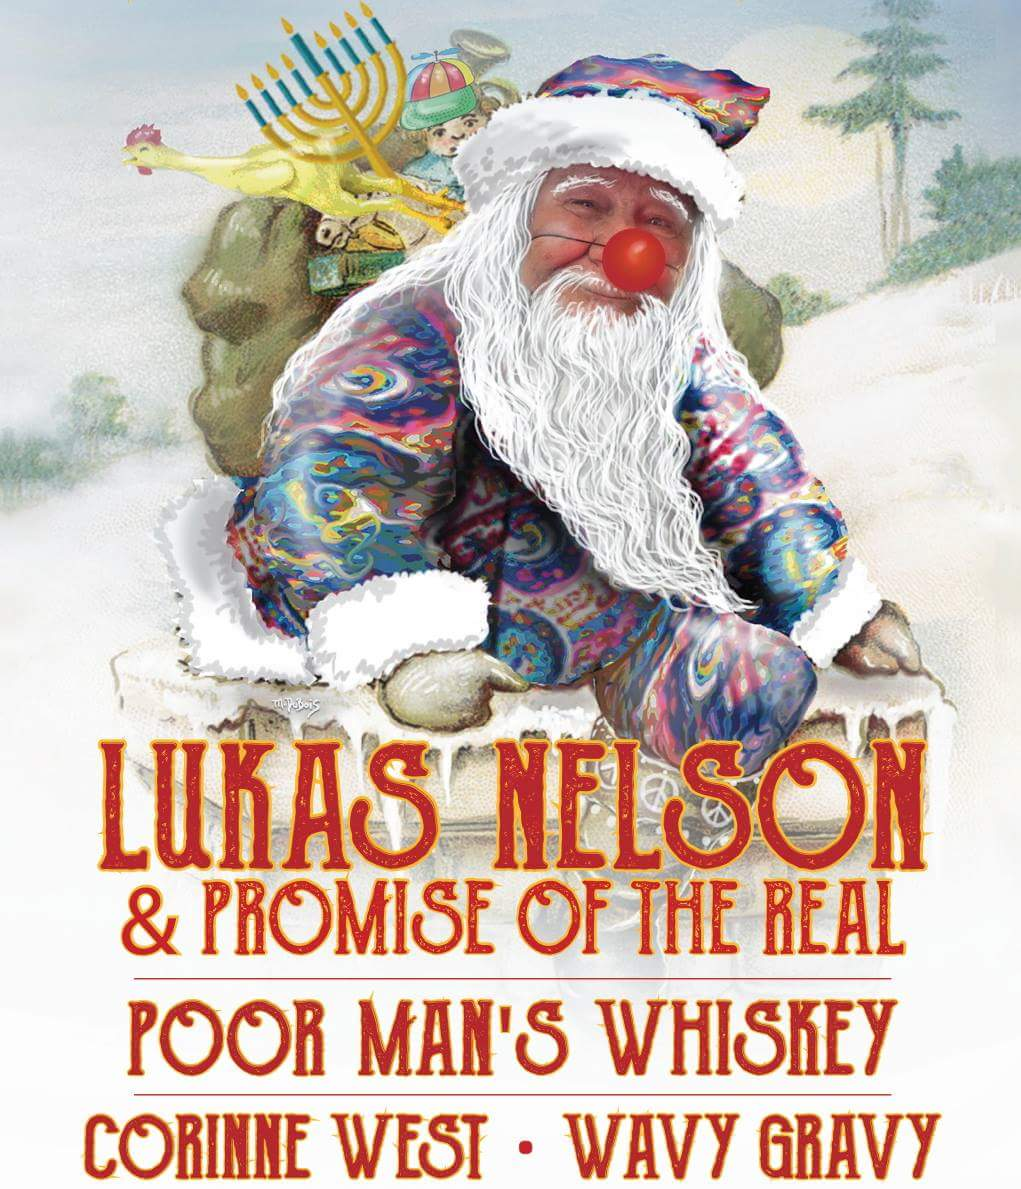 Lukas Nelson and the Promise of the Real, Poor Man's Whiskey, Corrine West, Wavy Gravy~ SEVA FOUNDATION 2016 HOLIDAY SHOW IN BERKELEY!